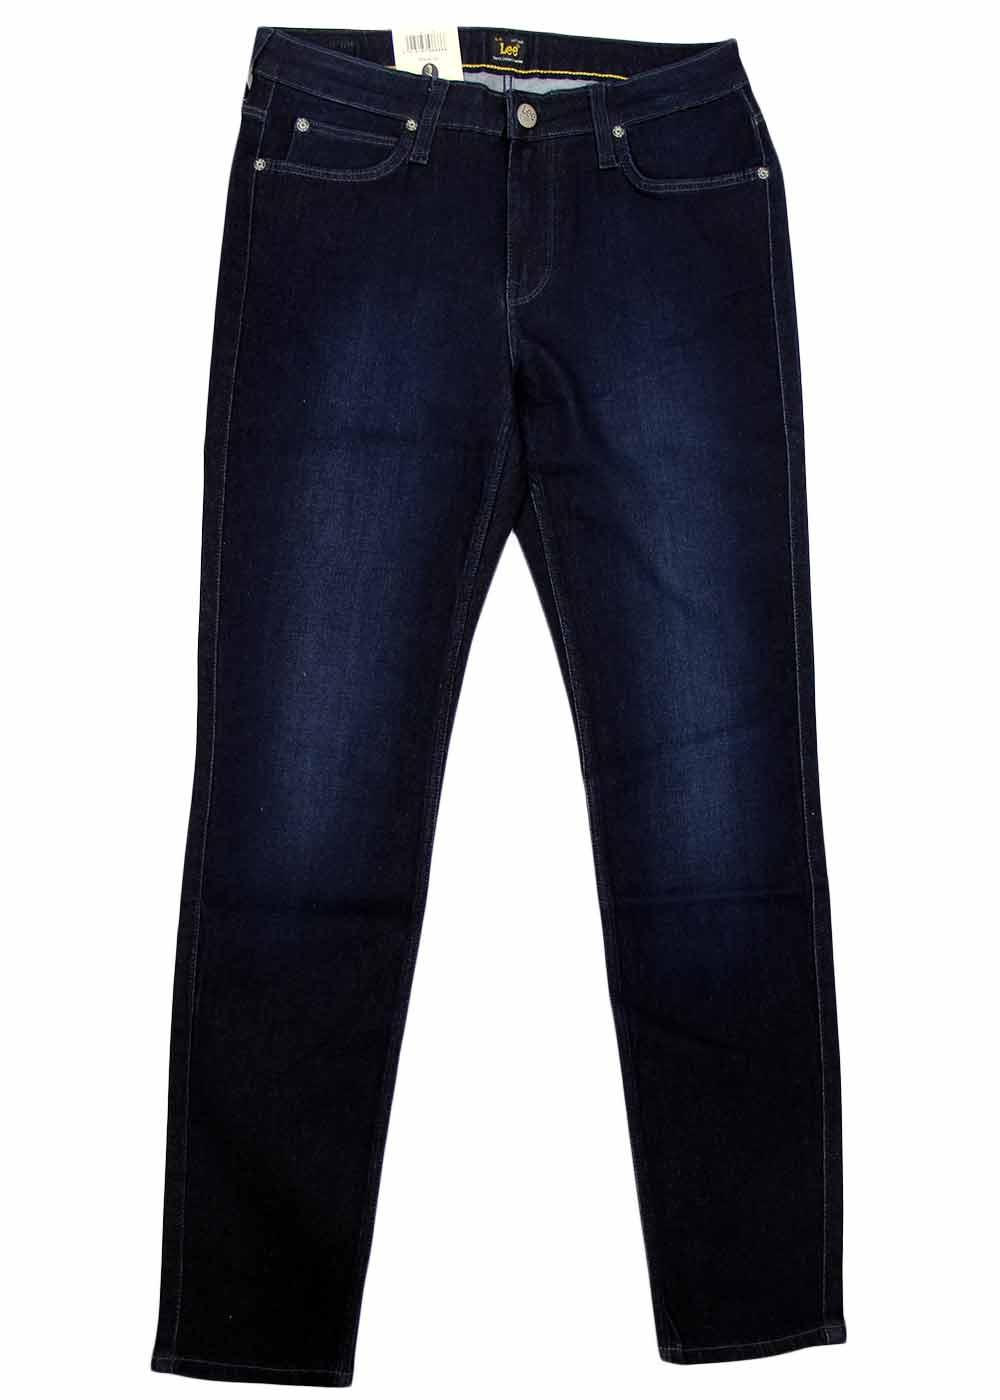 Scarlett LEE Retro Velvet Blue Skinny Denim Jeans